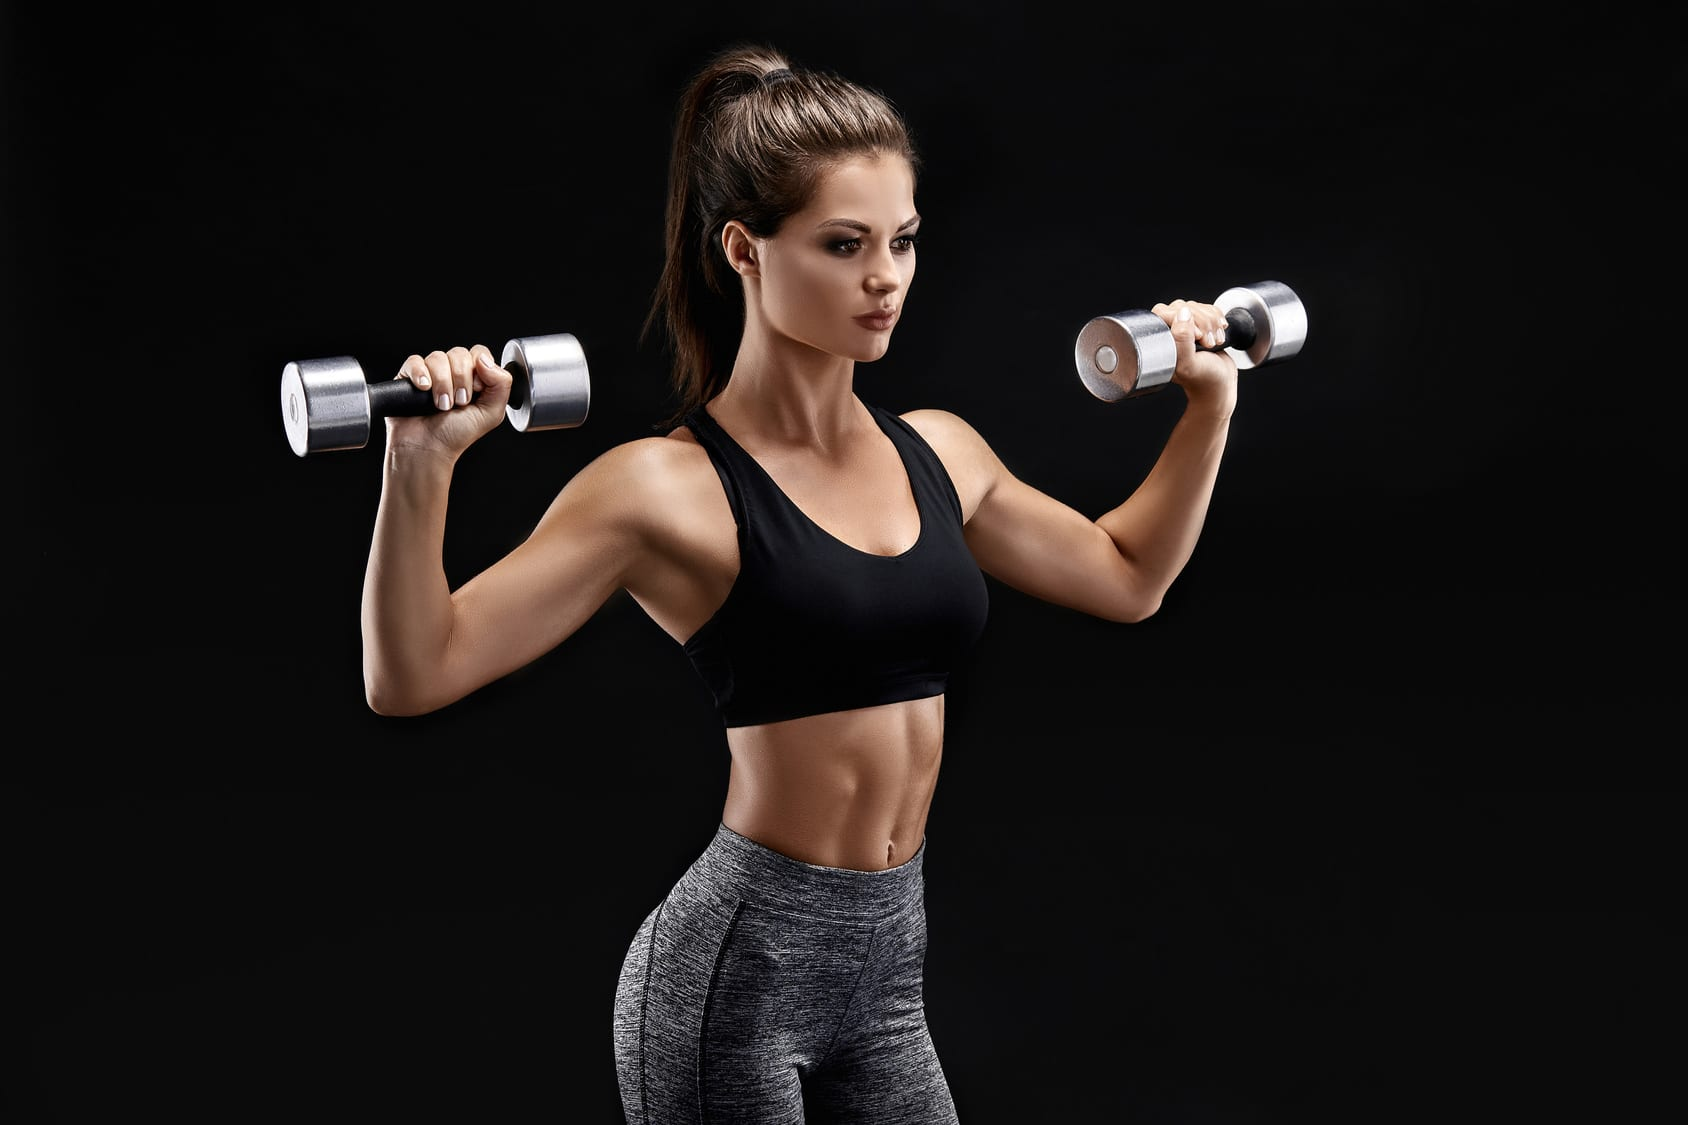 Does Weight Training Really Reduce Breast Size In Women?